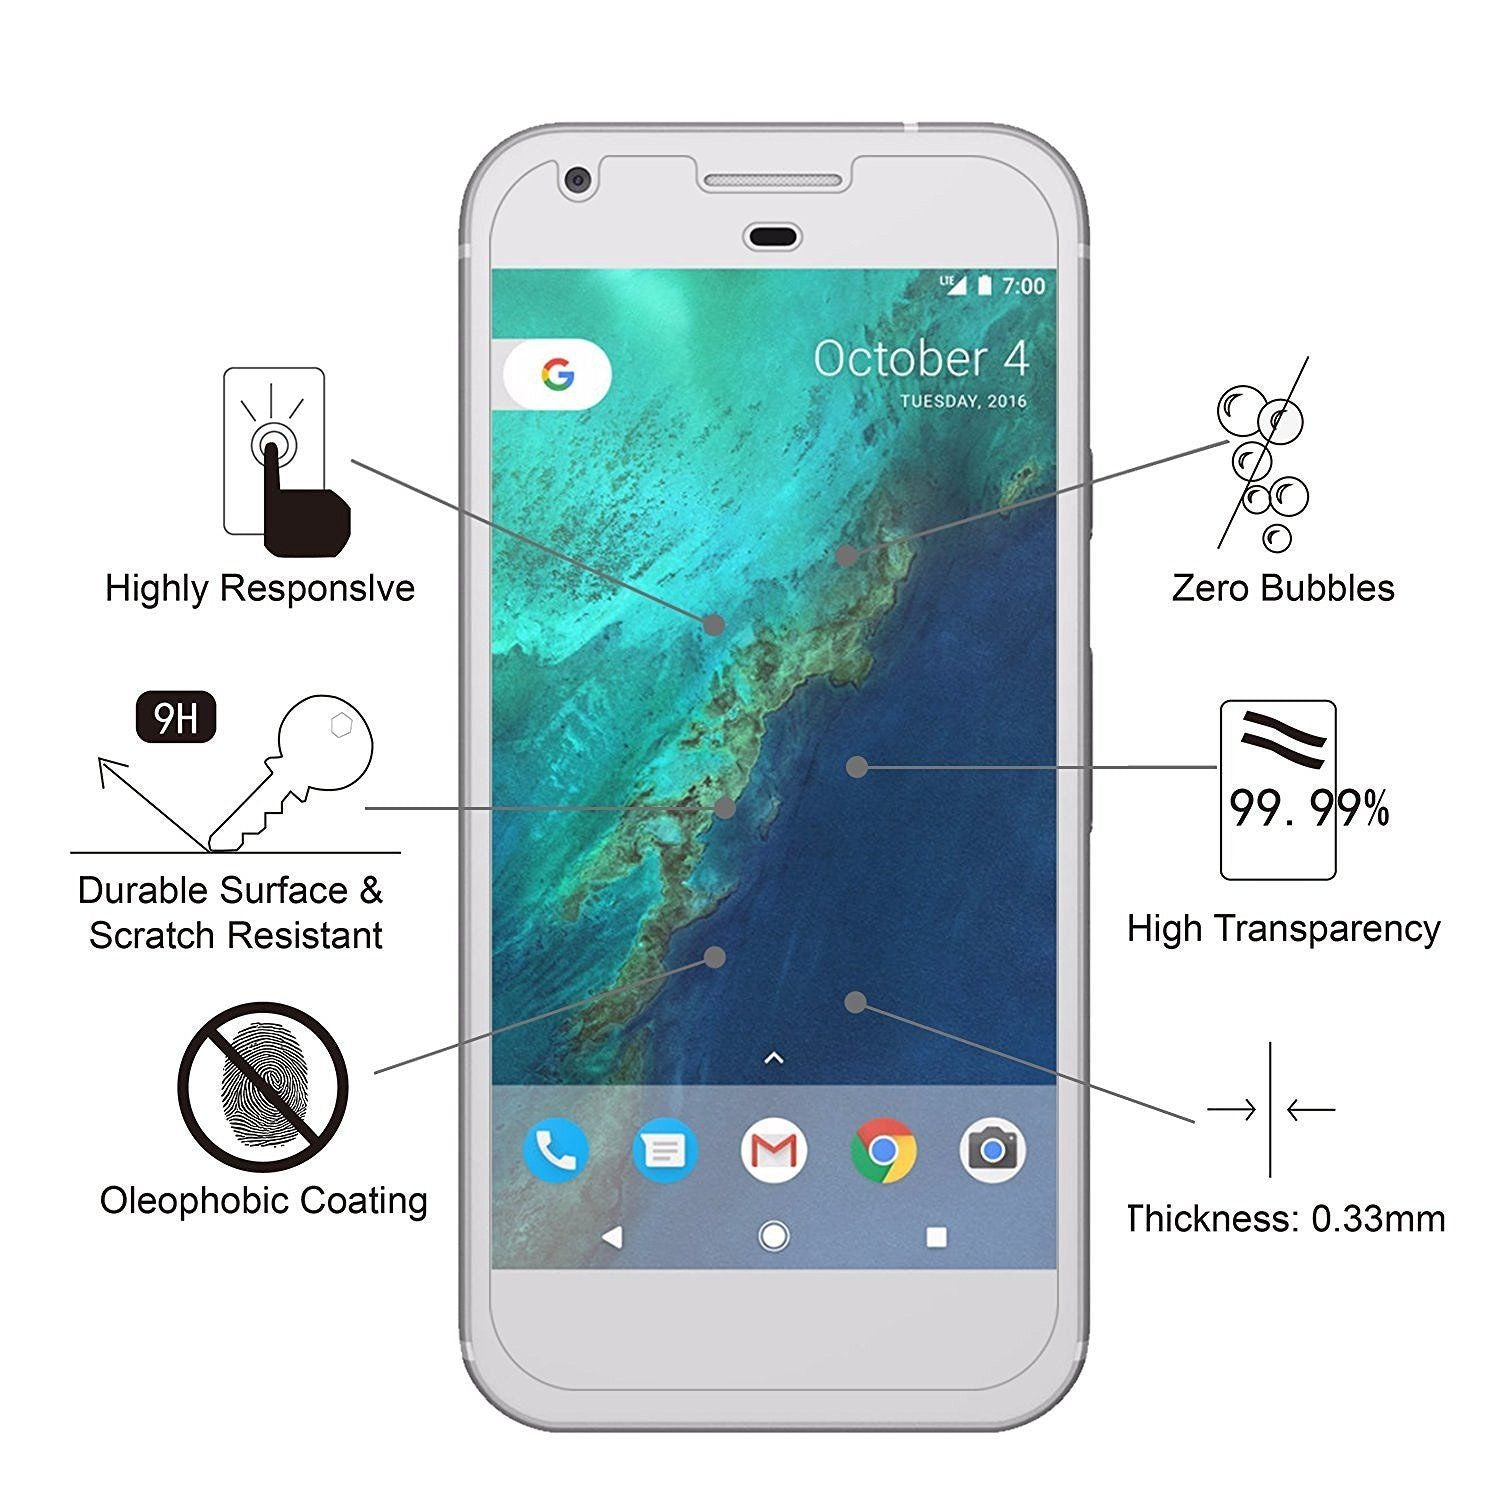 GENINE TAGGSHIELD TEMPERED GLASS SCREEN PROTECTOR FOR Google Pixel / Pixel XL